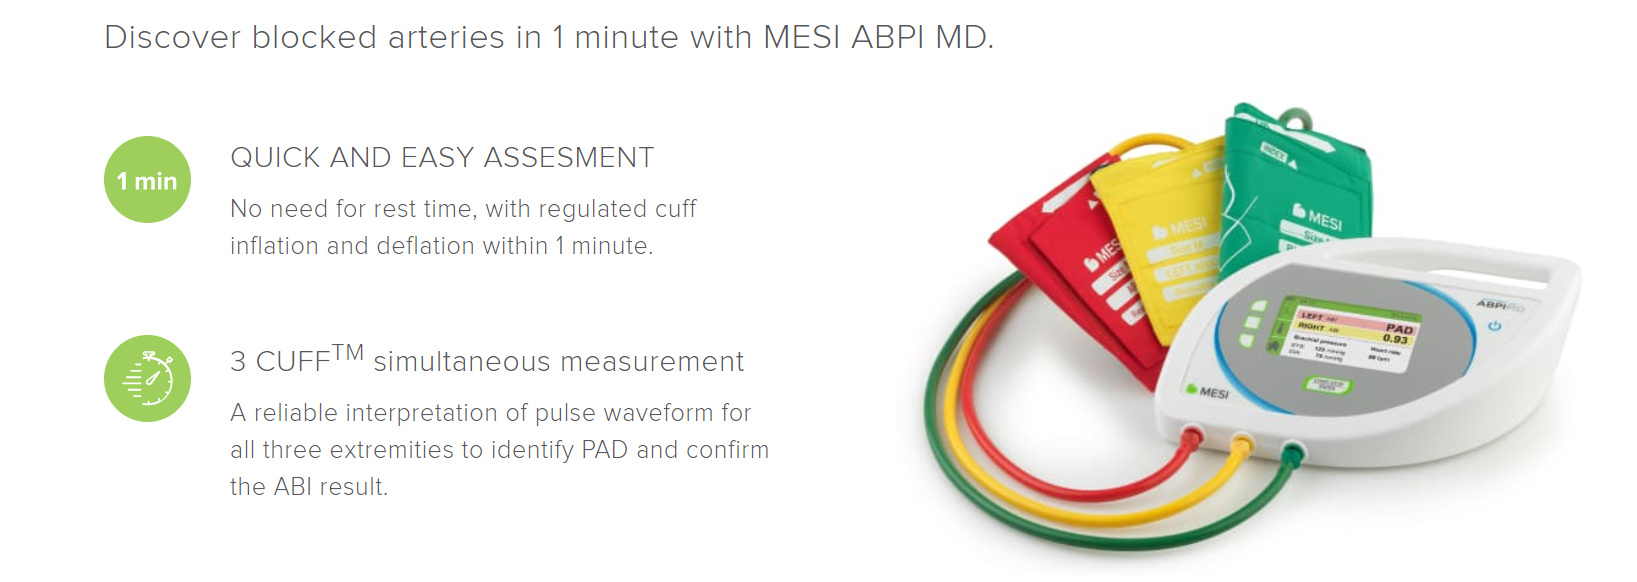 Measure ABI with MESI ABPI MD